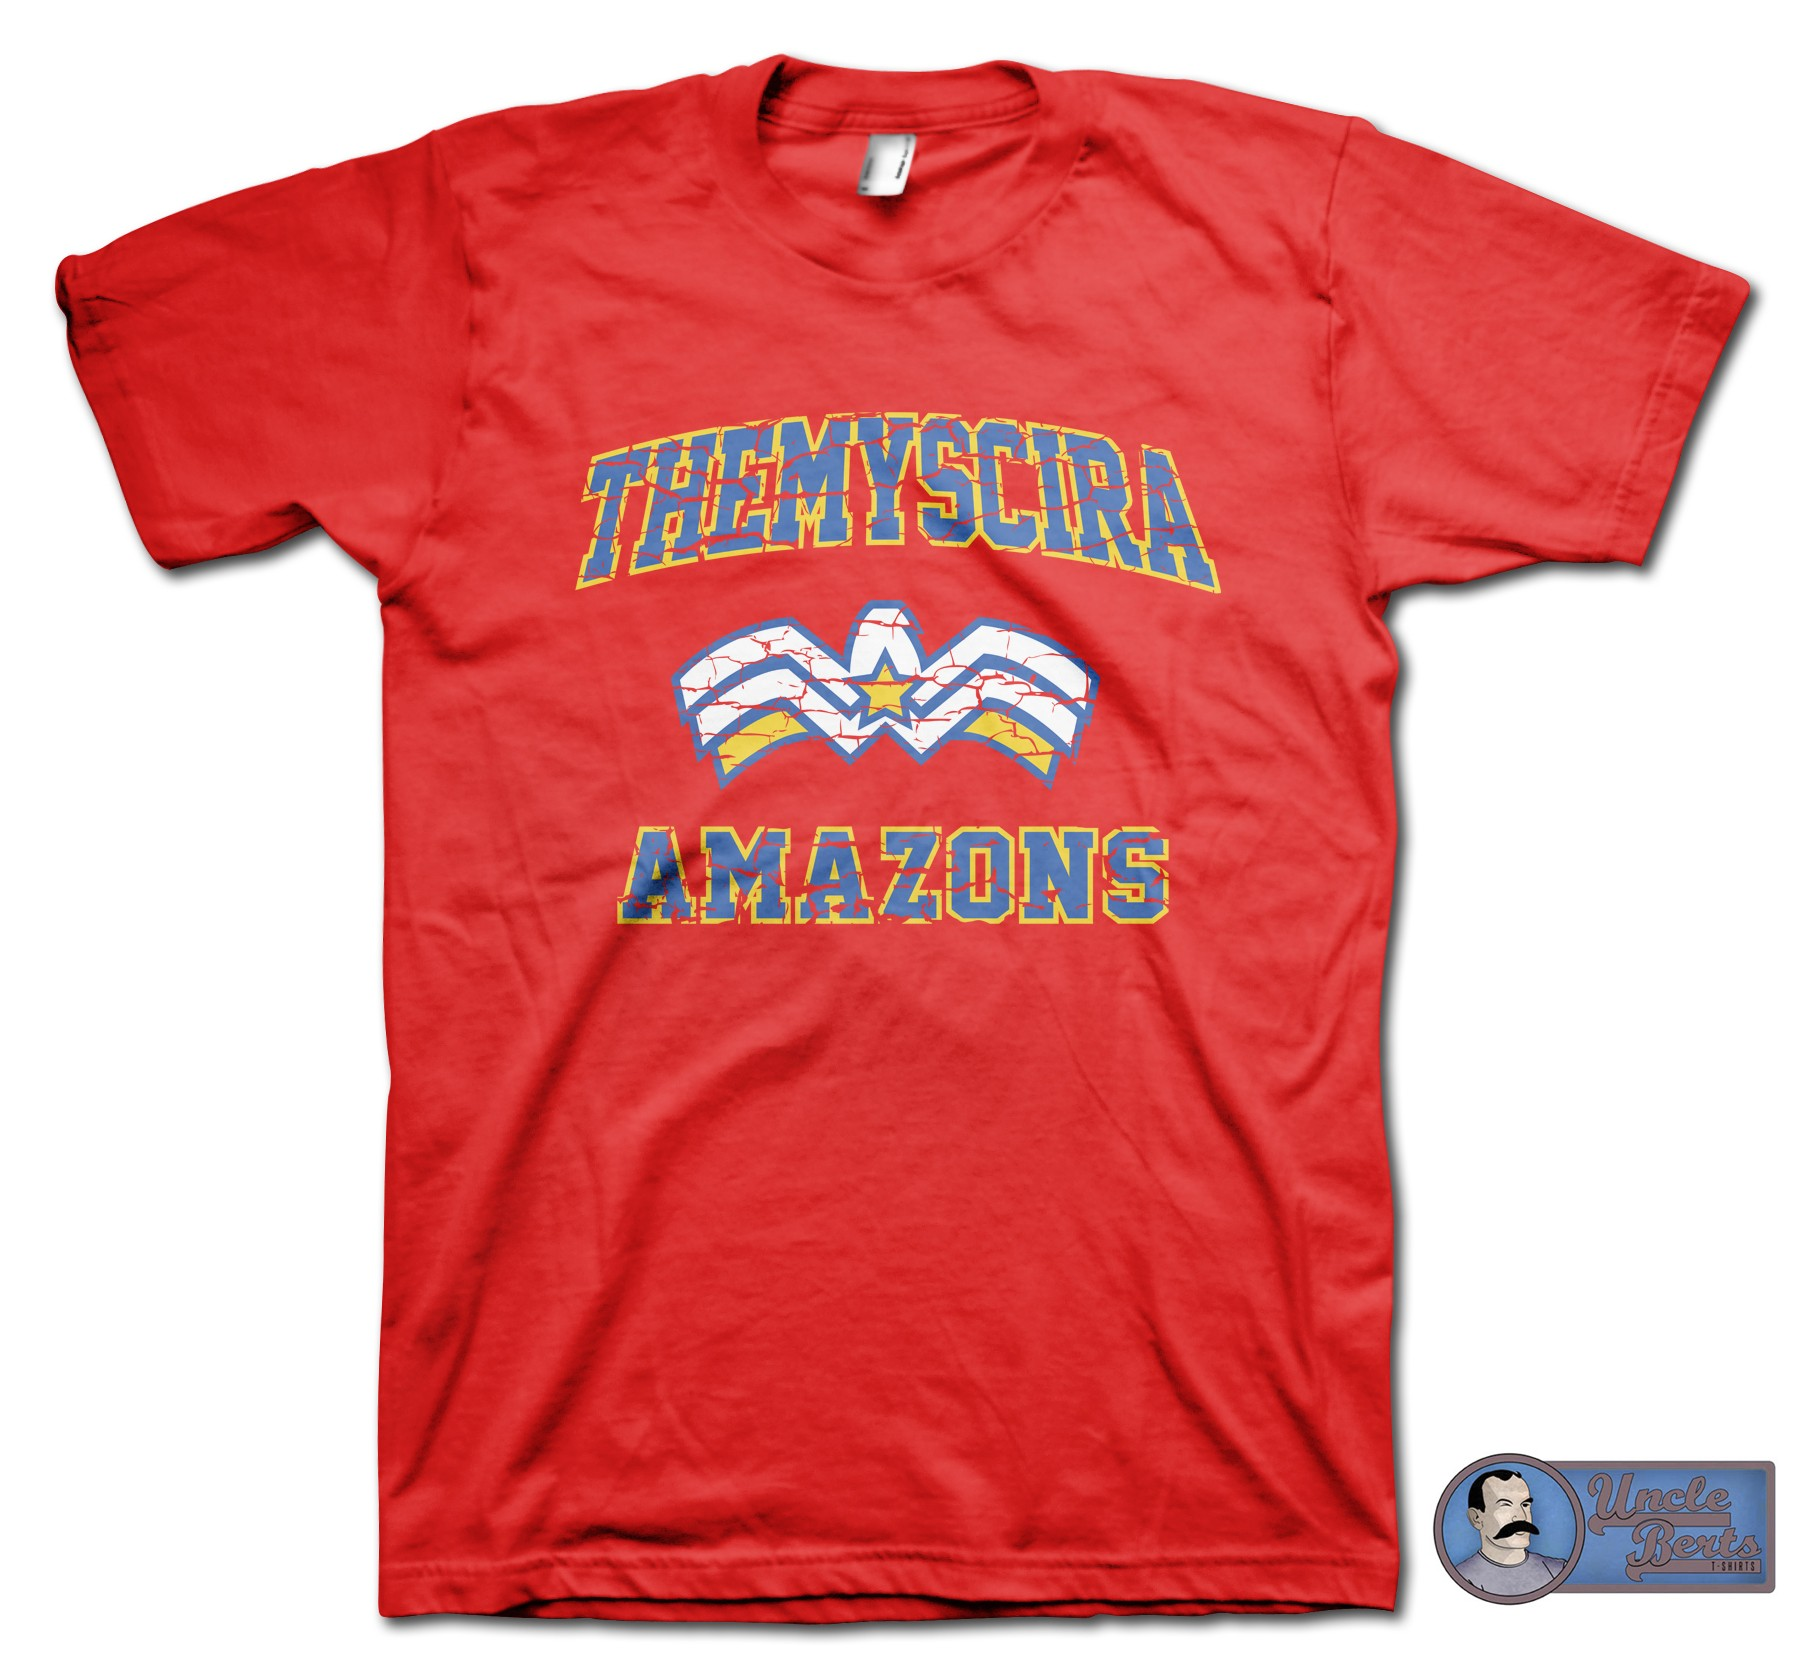 Wonder Woman inspired Theymscira Amazons T-Shirt